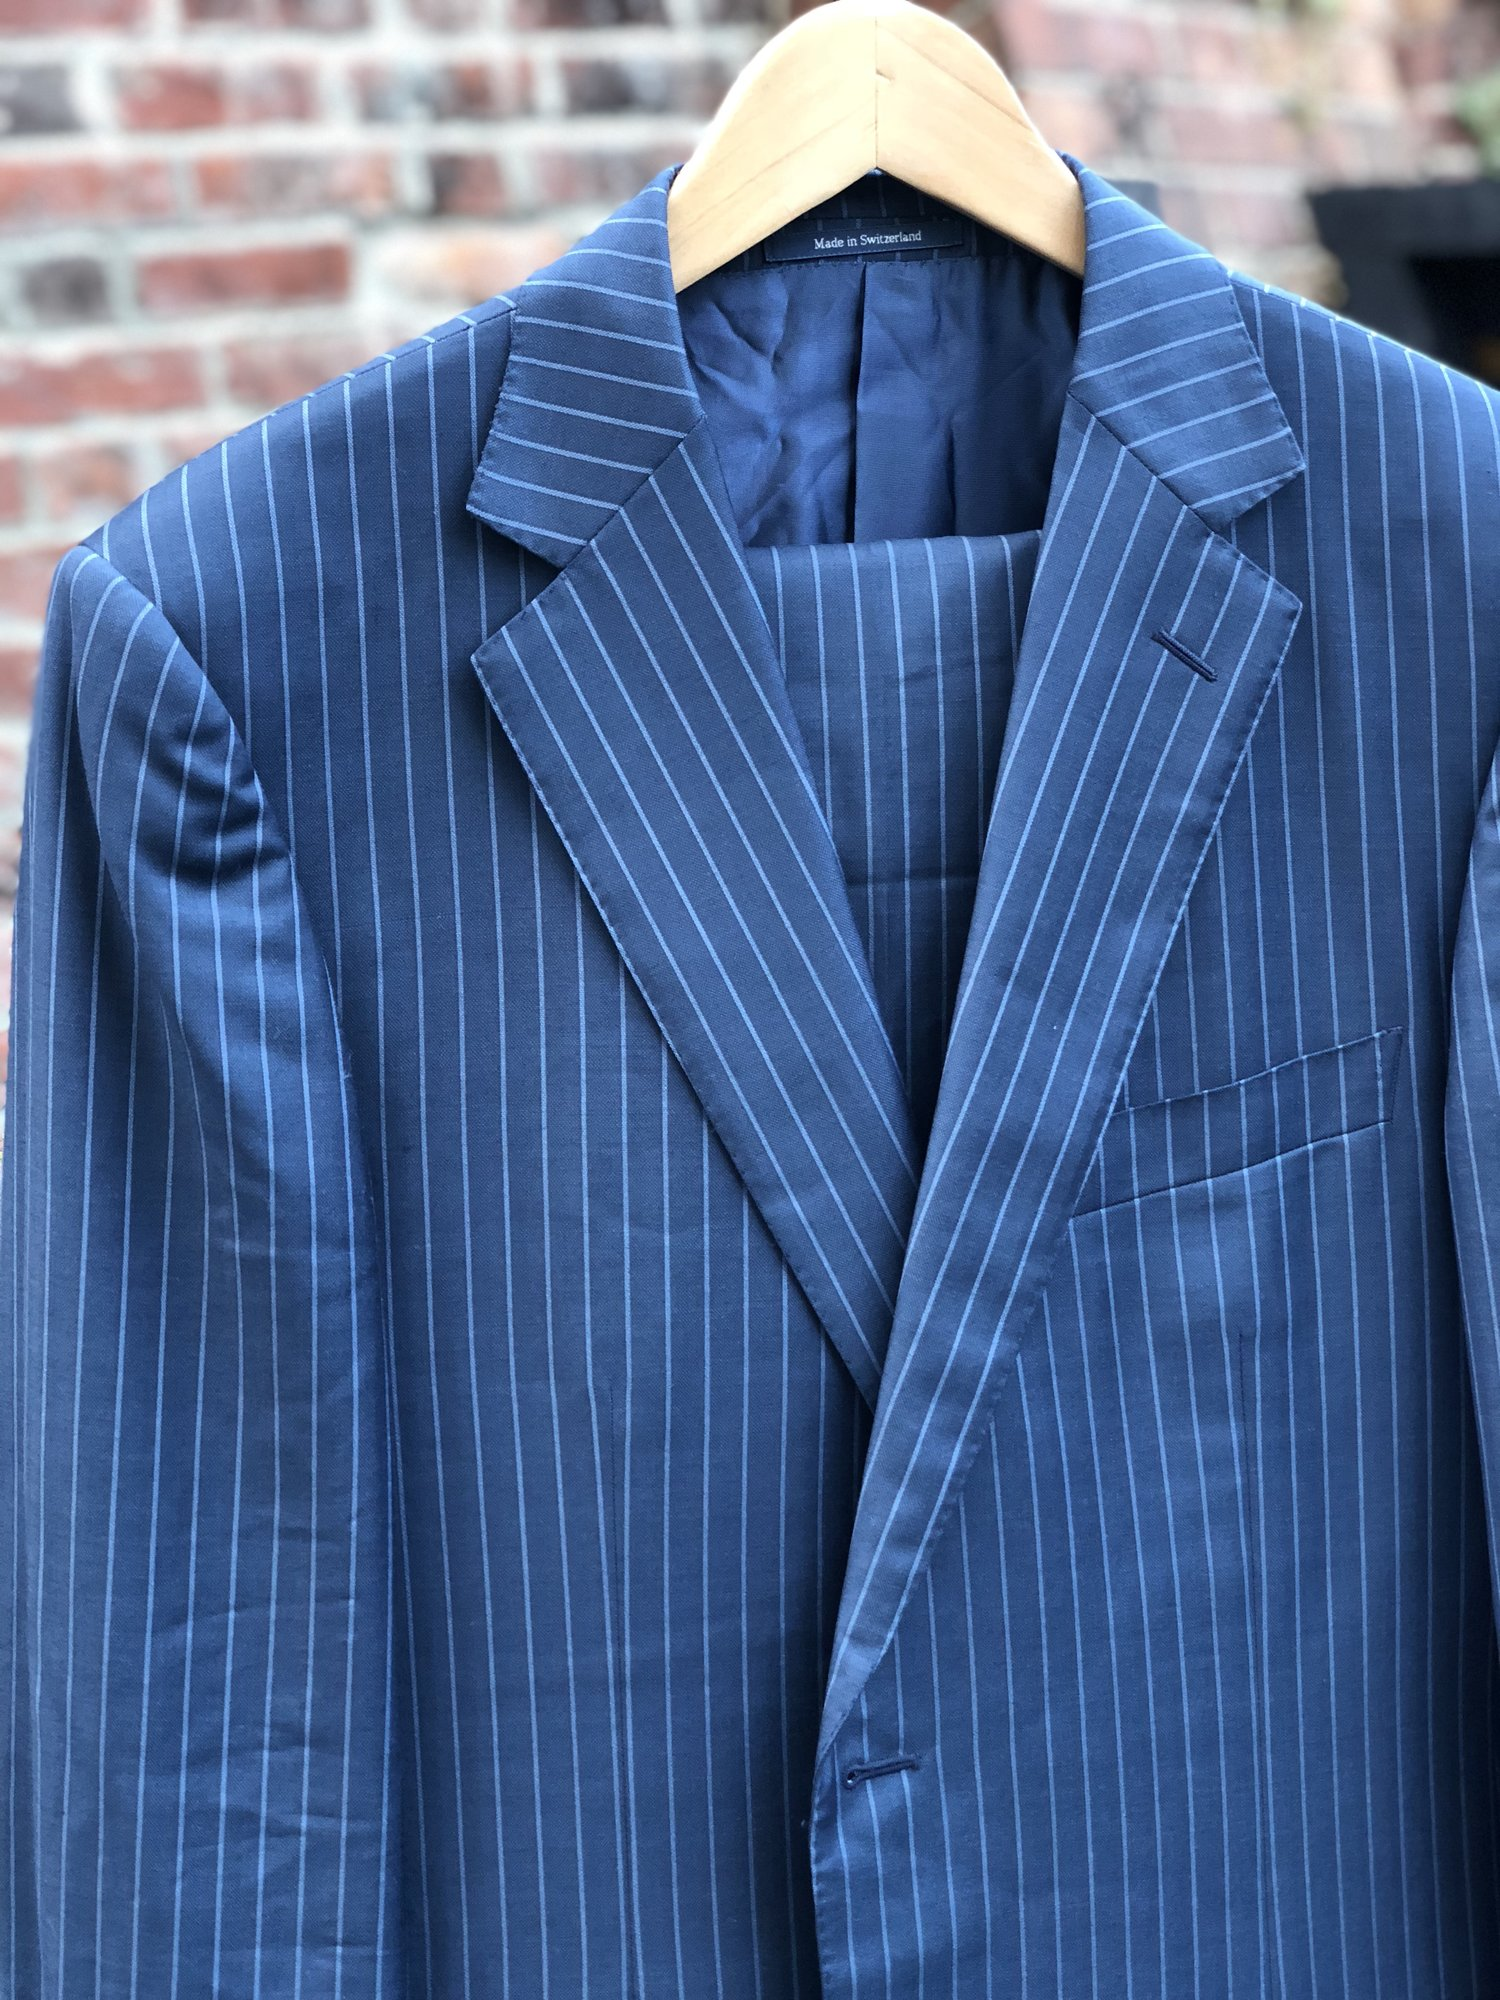 broke in London but need nice suit and dress shirt | Page 2 | Styleforum